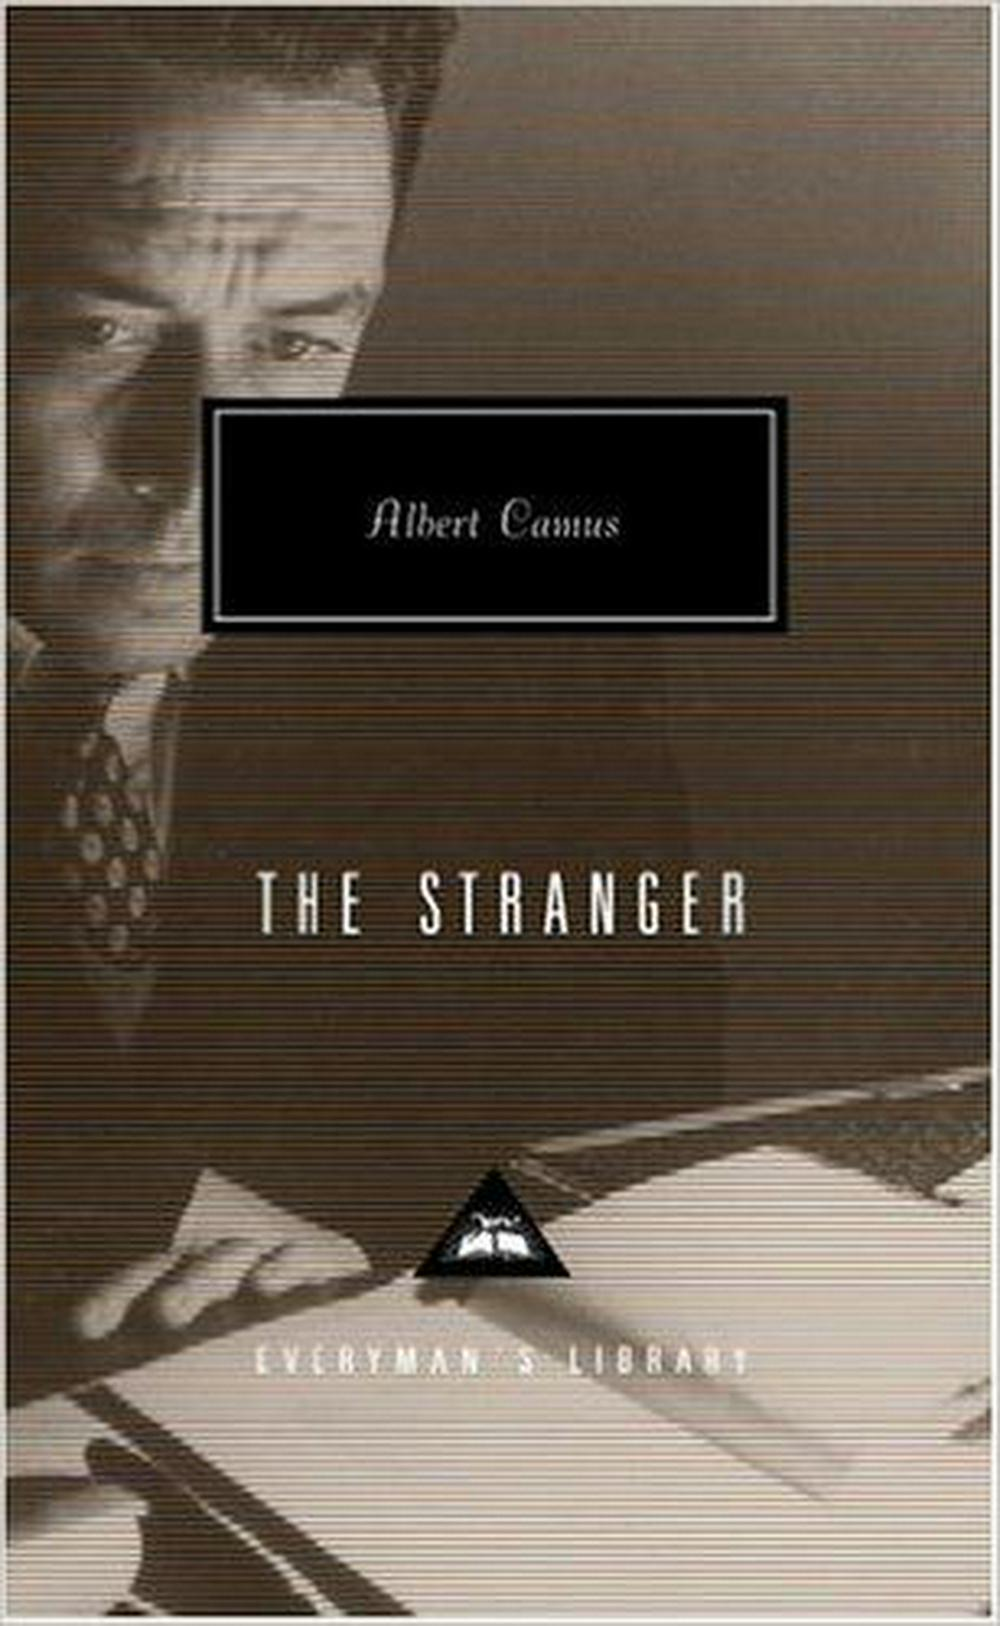 an analysis of the outsider a novel by albert camus World without purpose in camus' the stranger (the outsider) in the stranger, albert camus misleadingly portrays his existentialistic views of life, death, and the world camus portrays the world as absurd or without purpose meaursalt, who, as a reflection of camus, is foreign and indifferent to his own life and death.